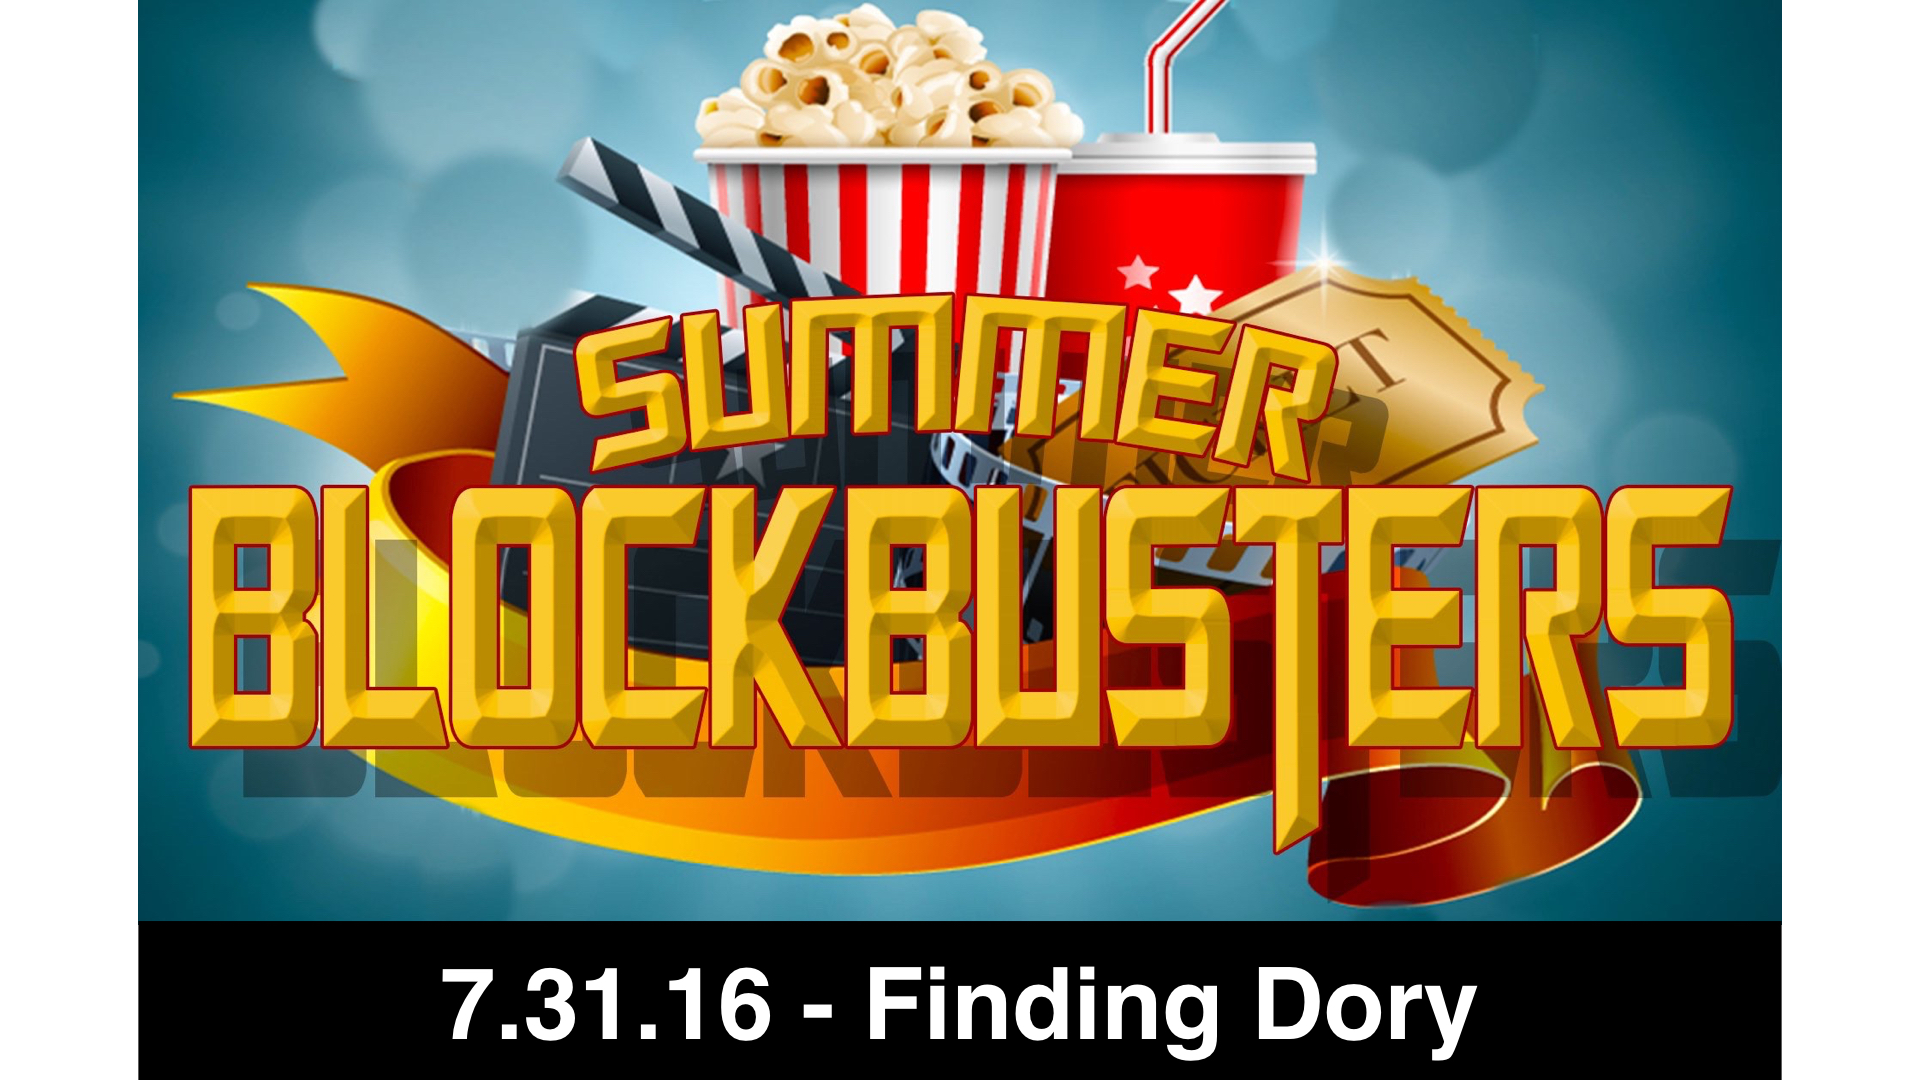 7.31.16-Finding Dory